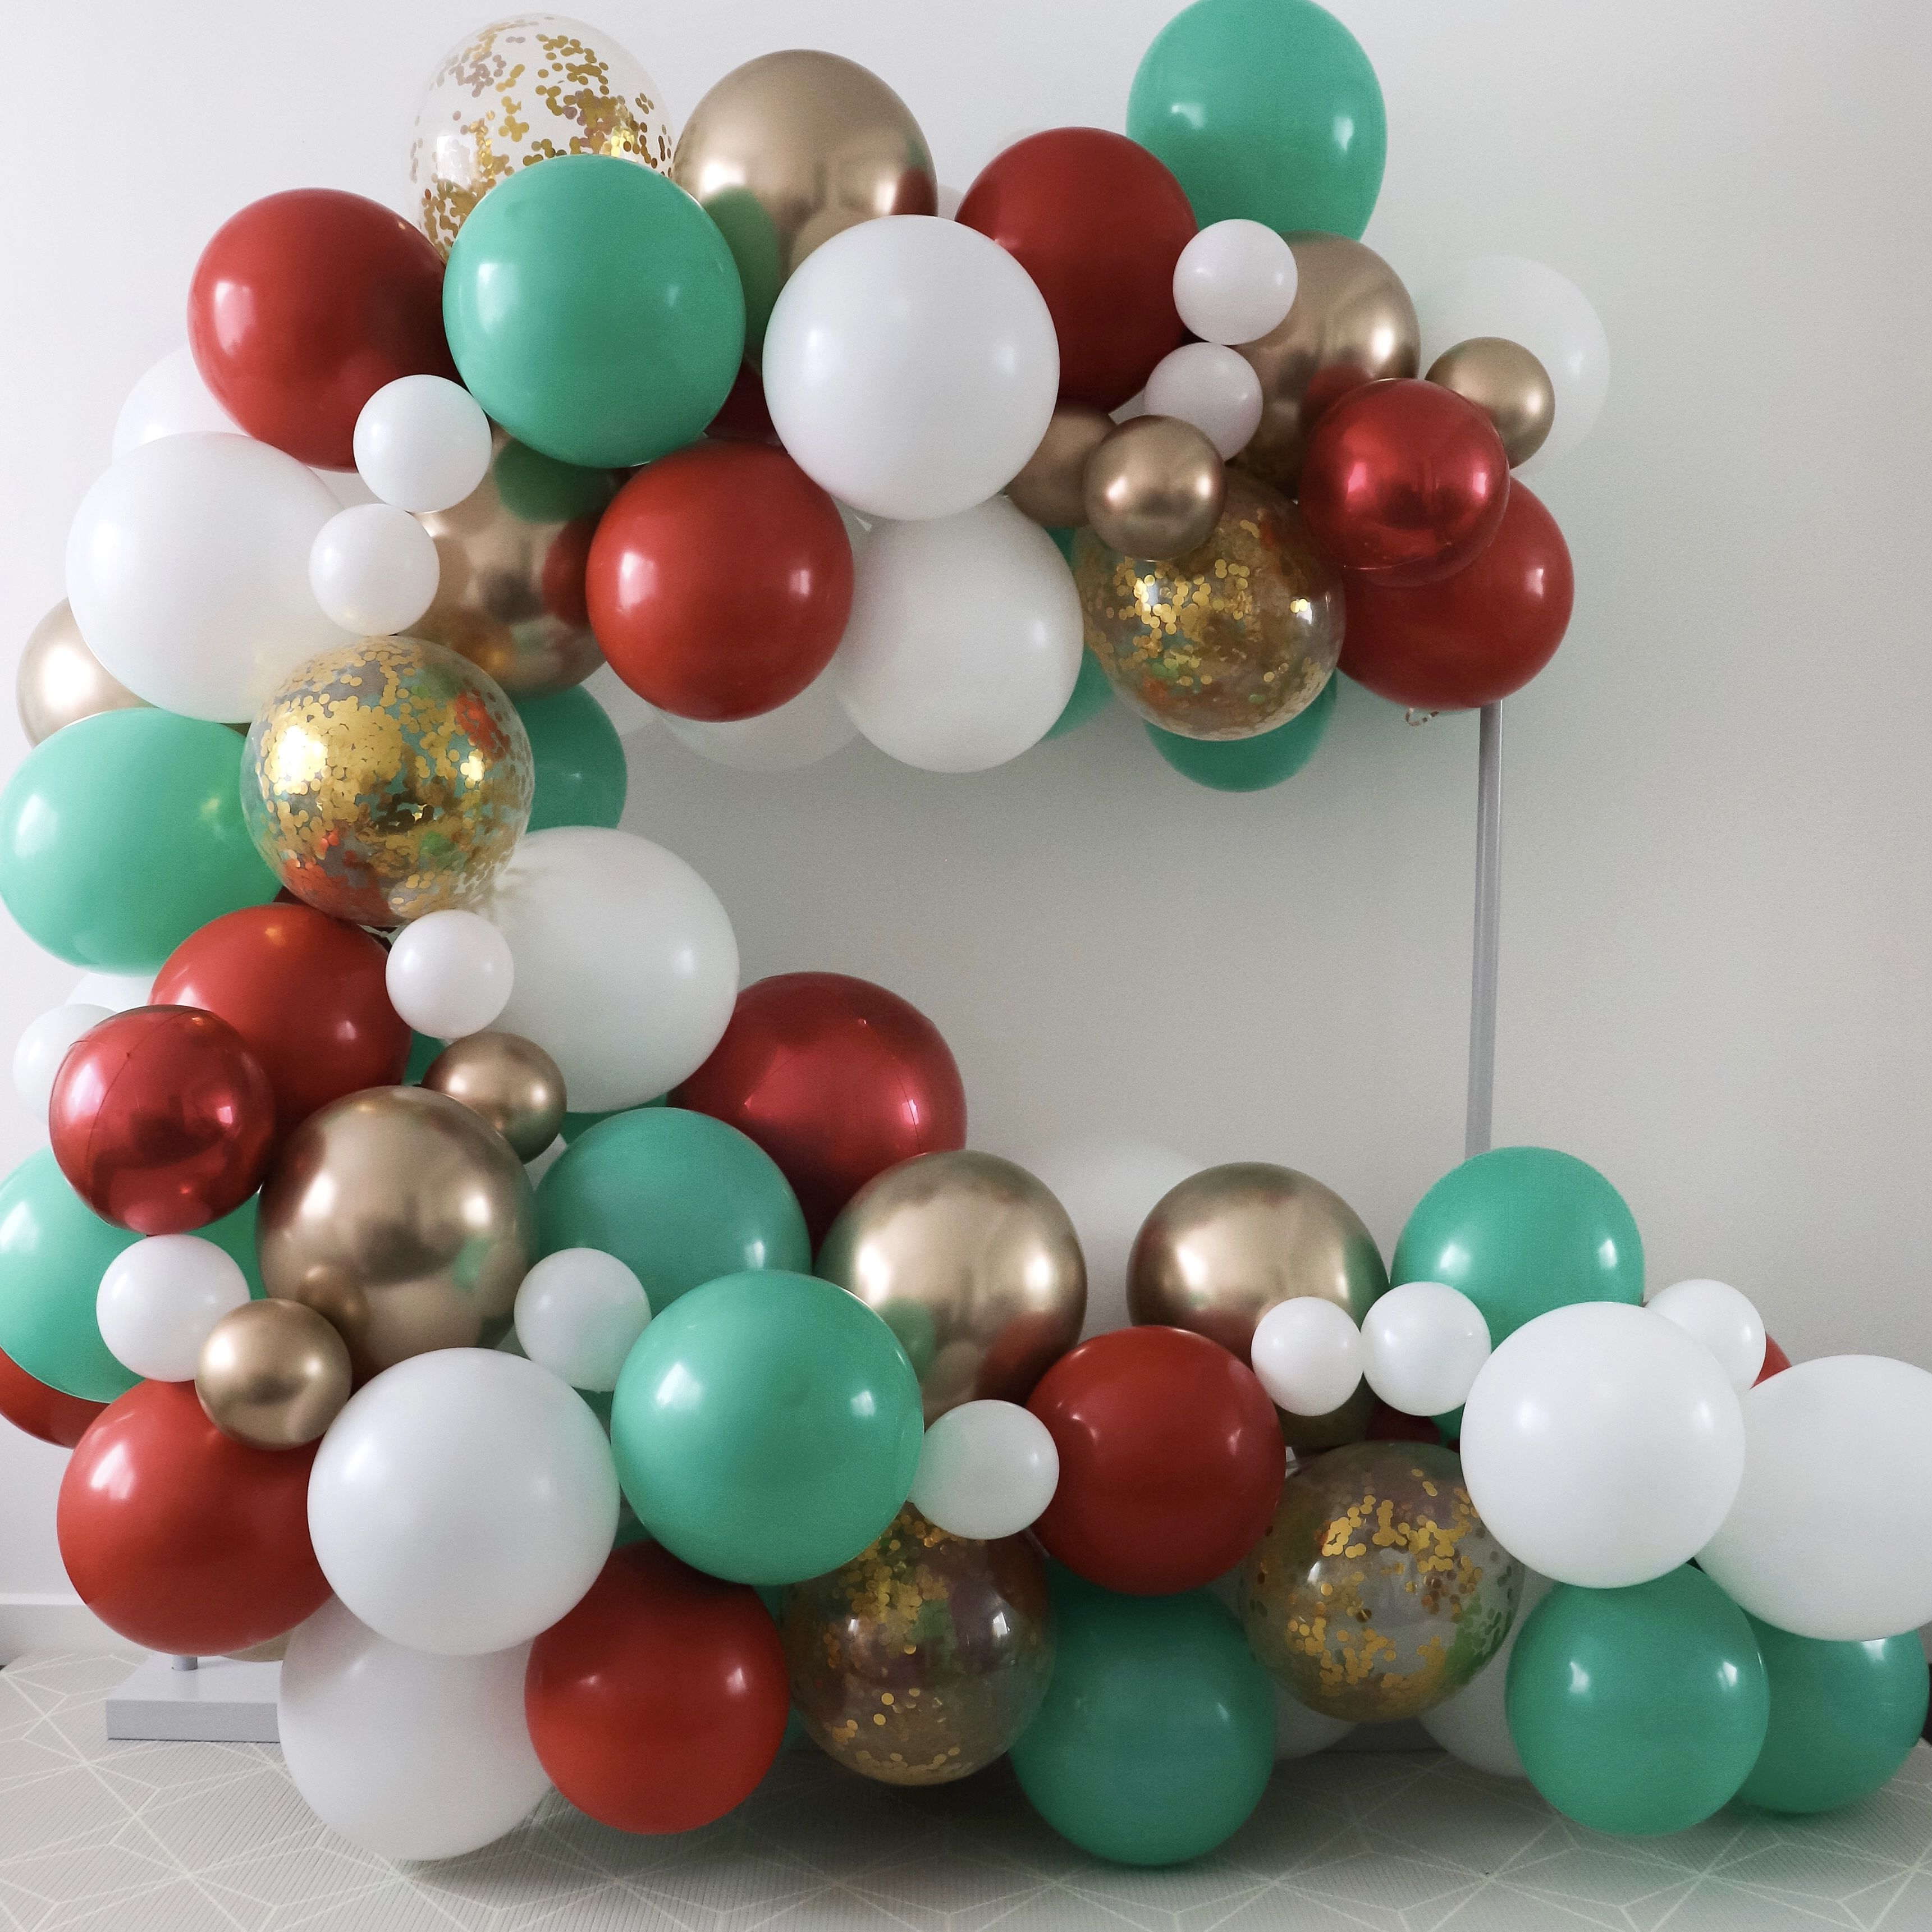 Our REGULAR SIZE balloon garland kits include everything